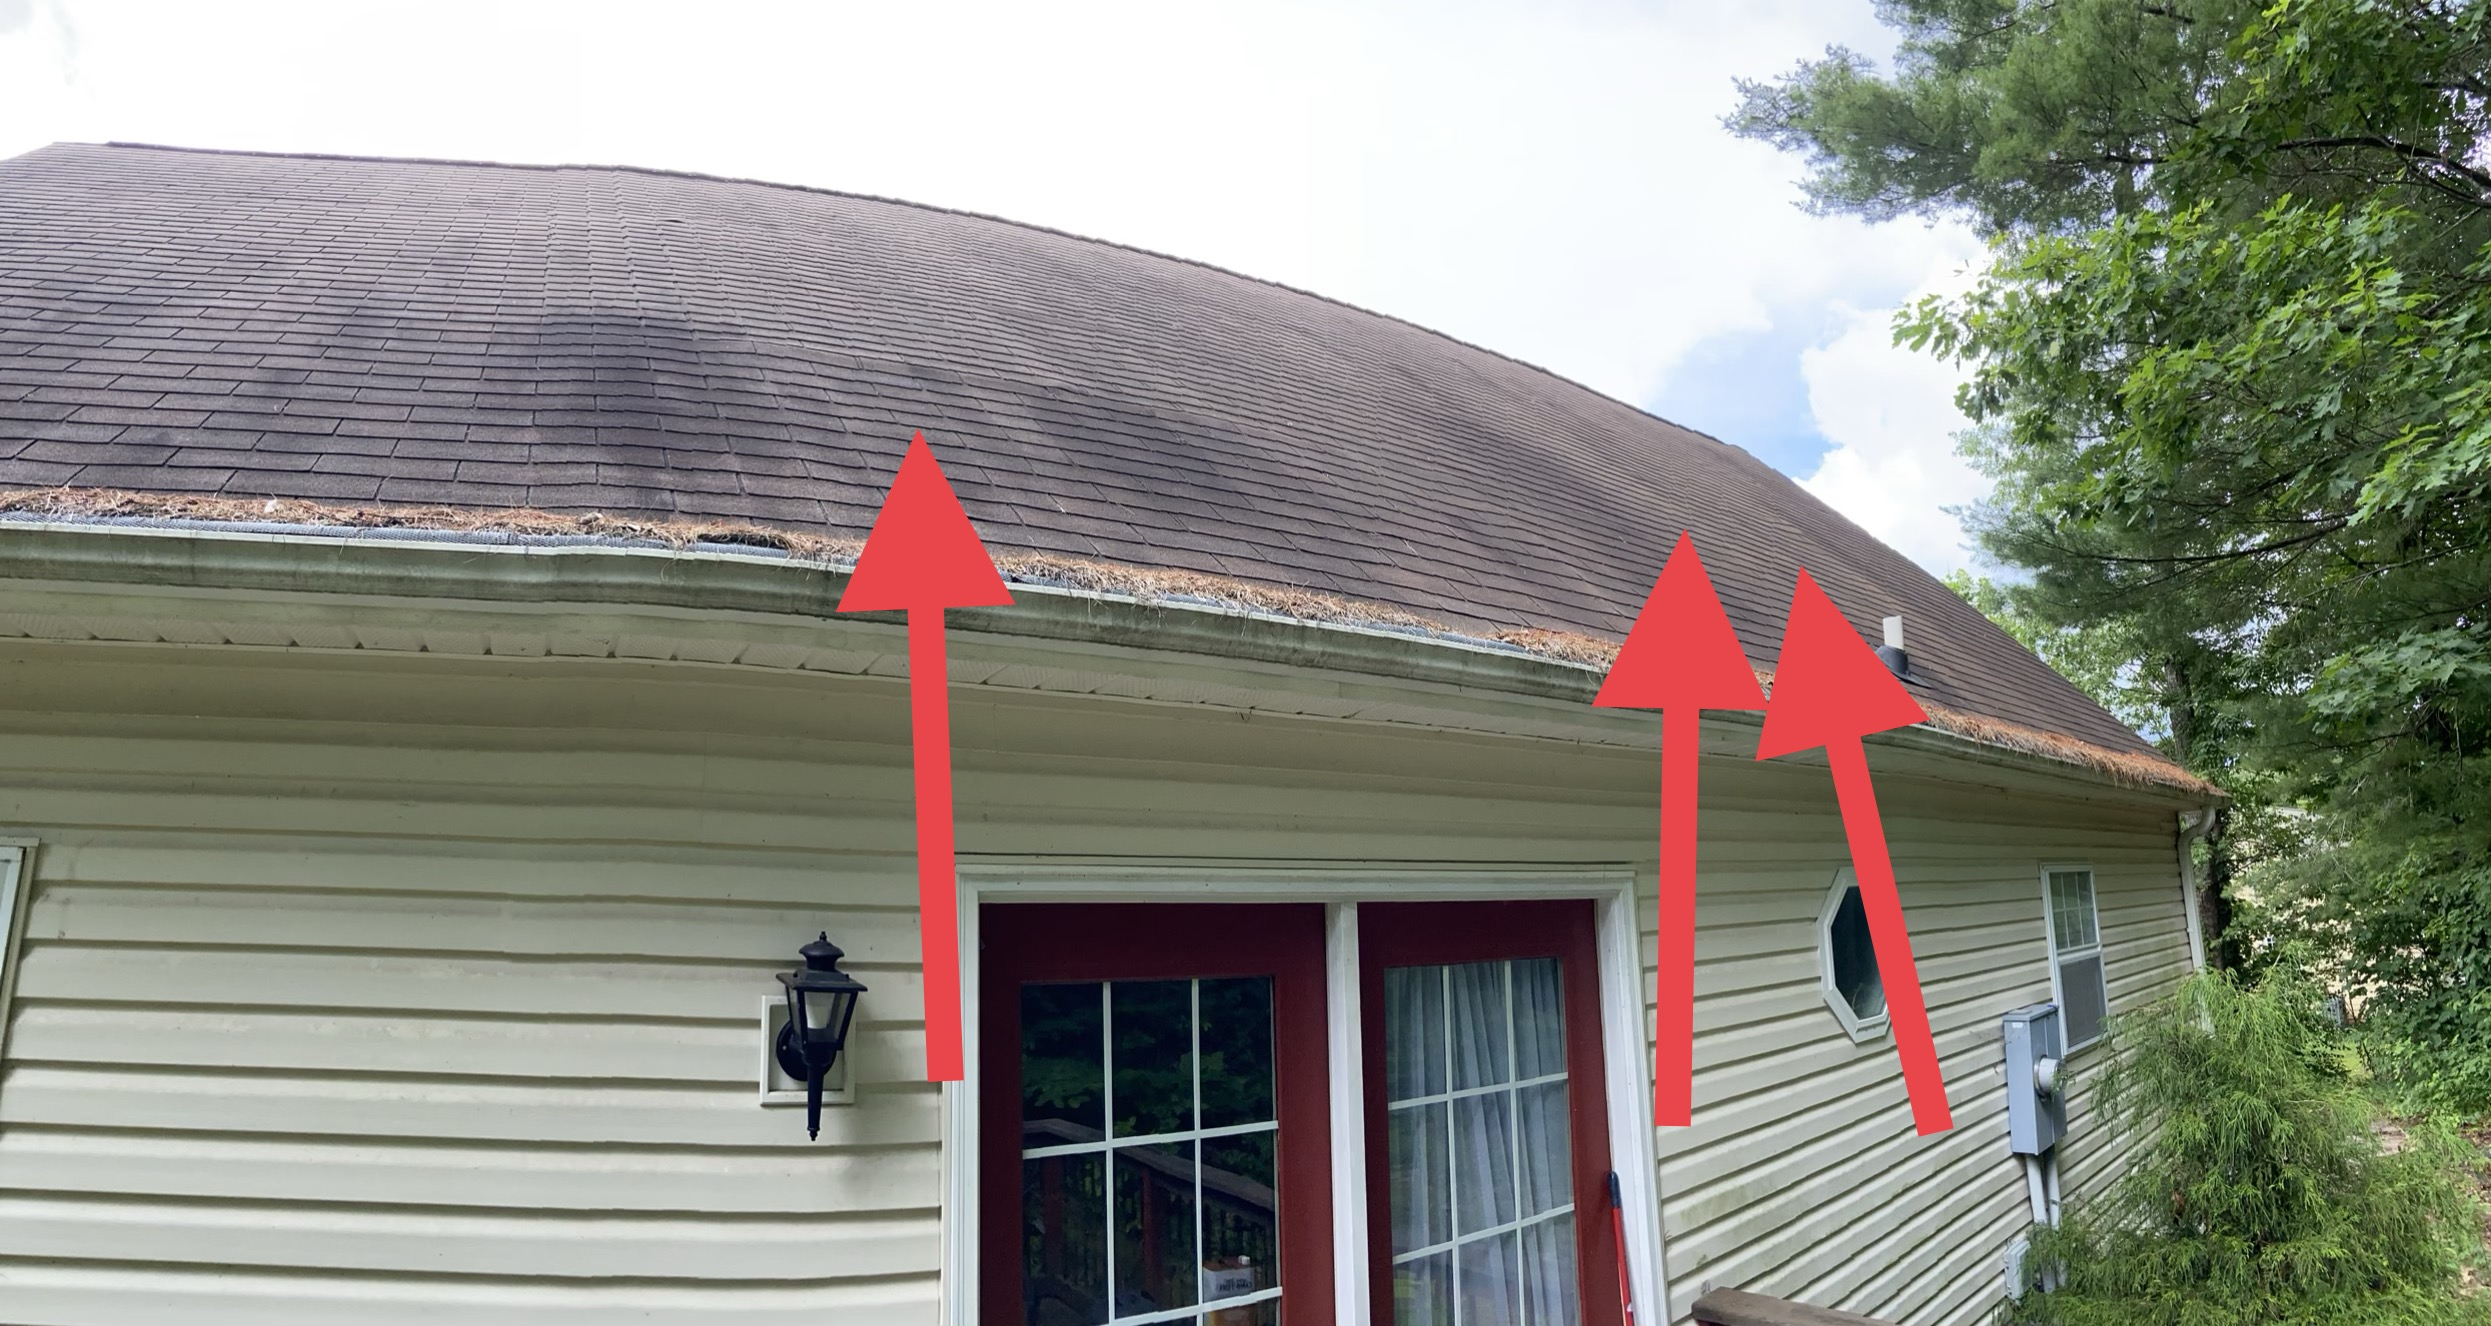 The Back of Roof has Deck Board Problems